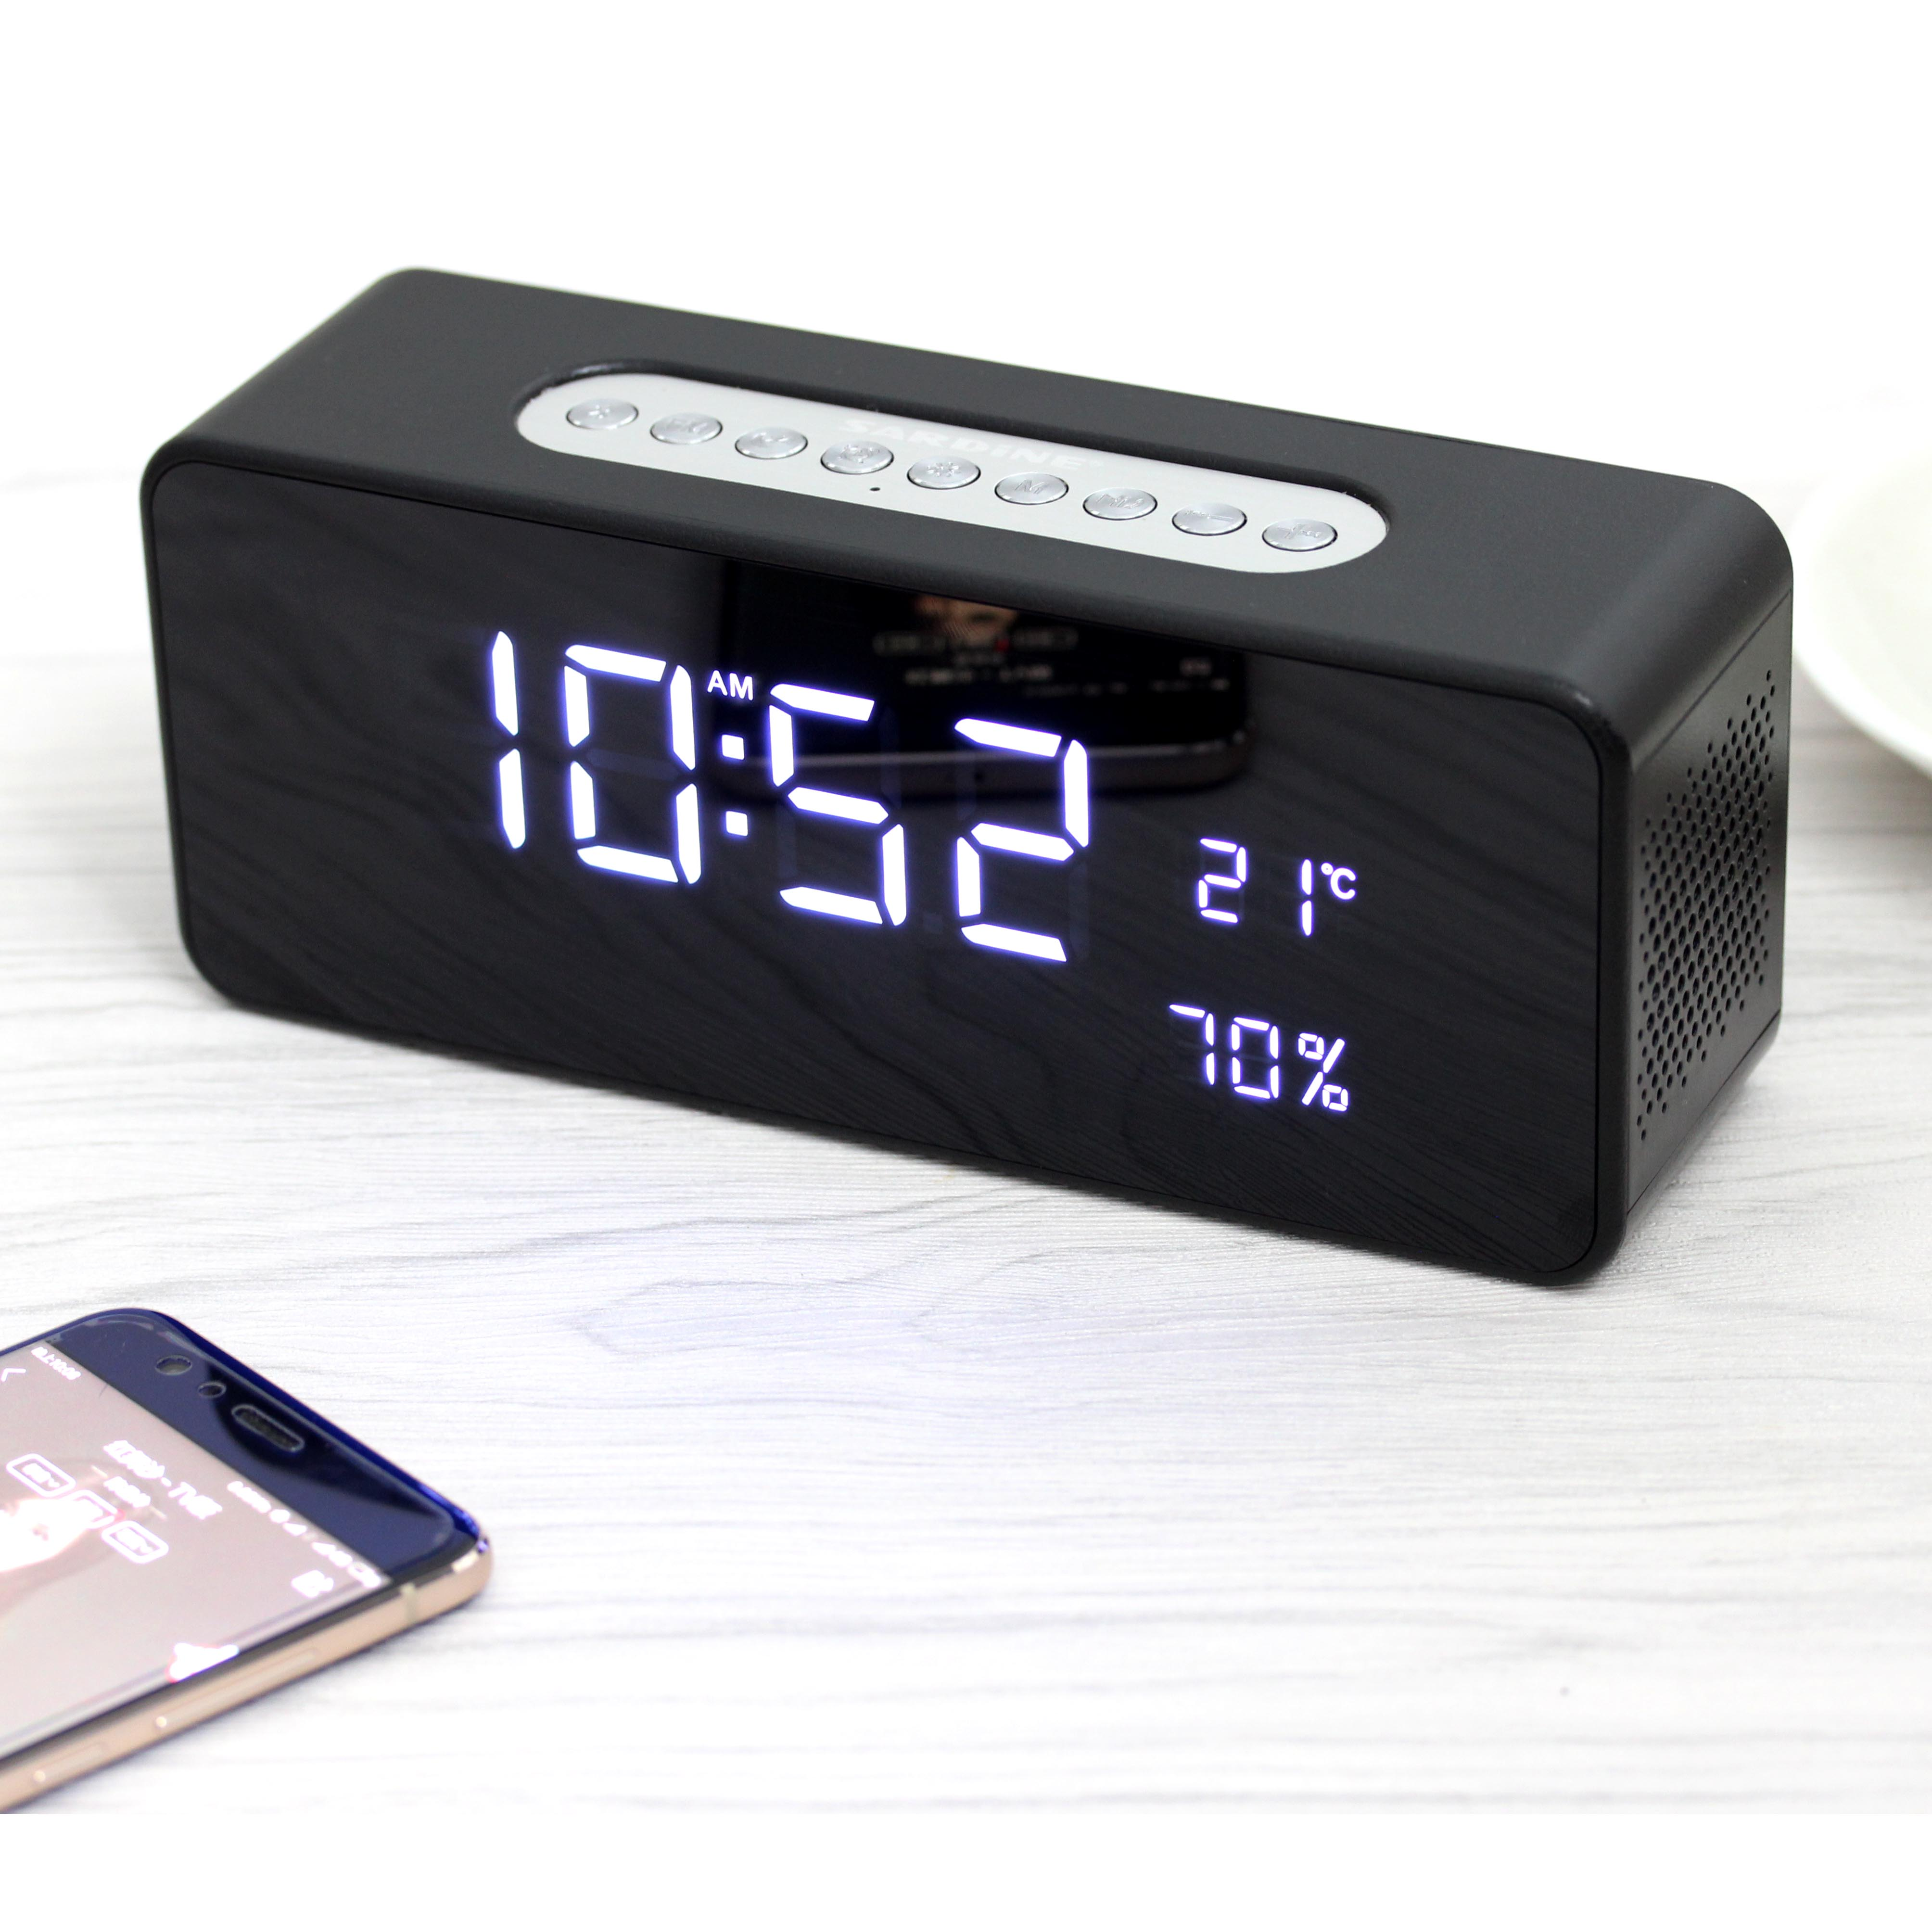 1f34e1a9368 S1 Bluetooth Speaker with alarm clock and temperature-蓝牙音箱 ...